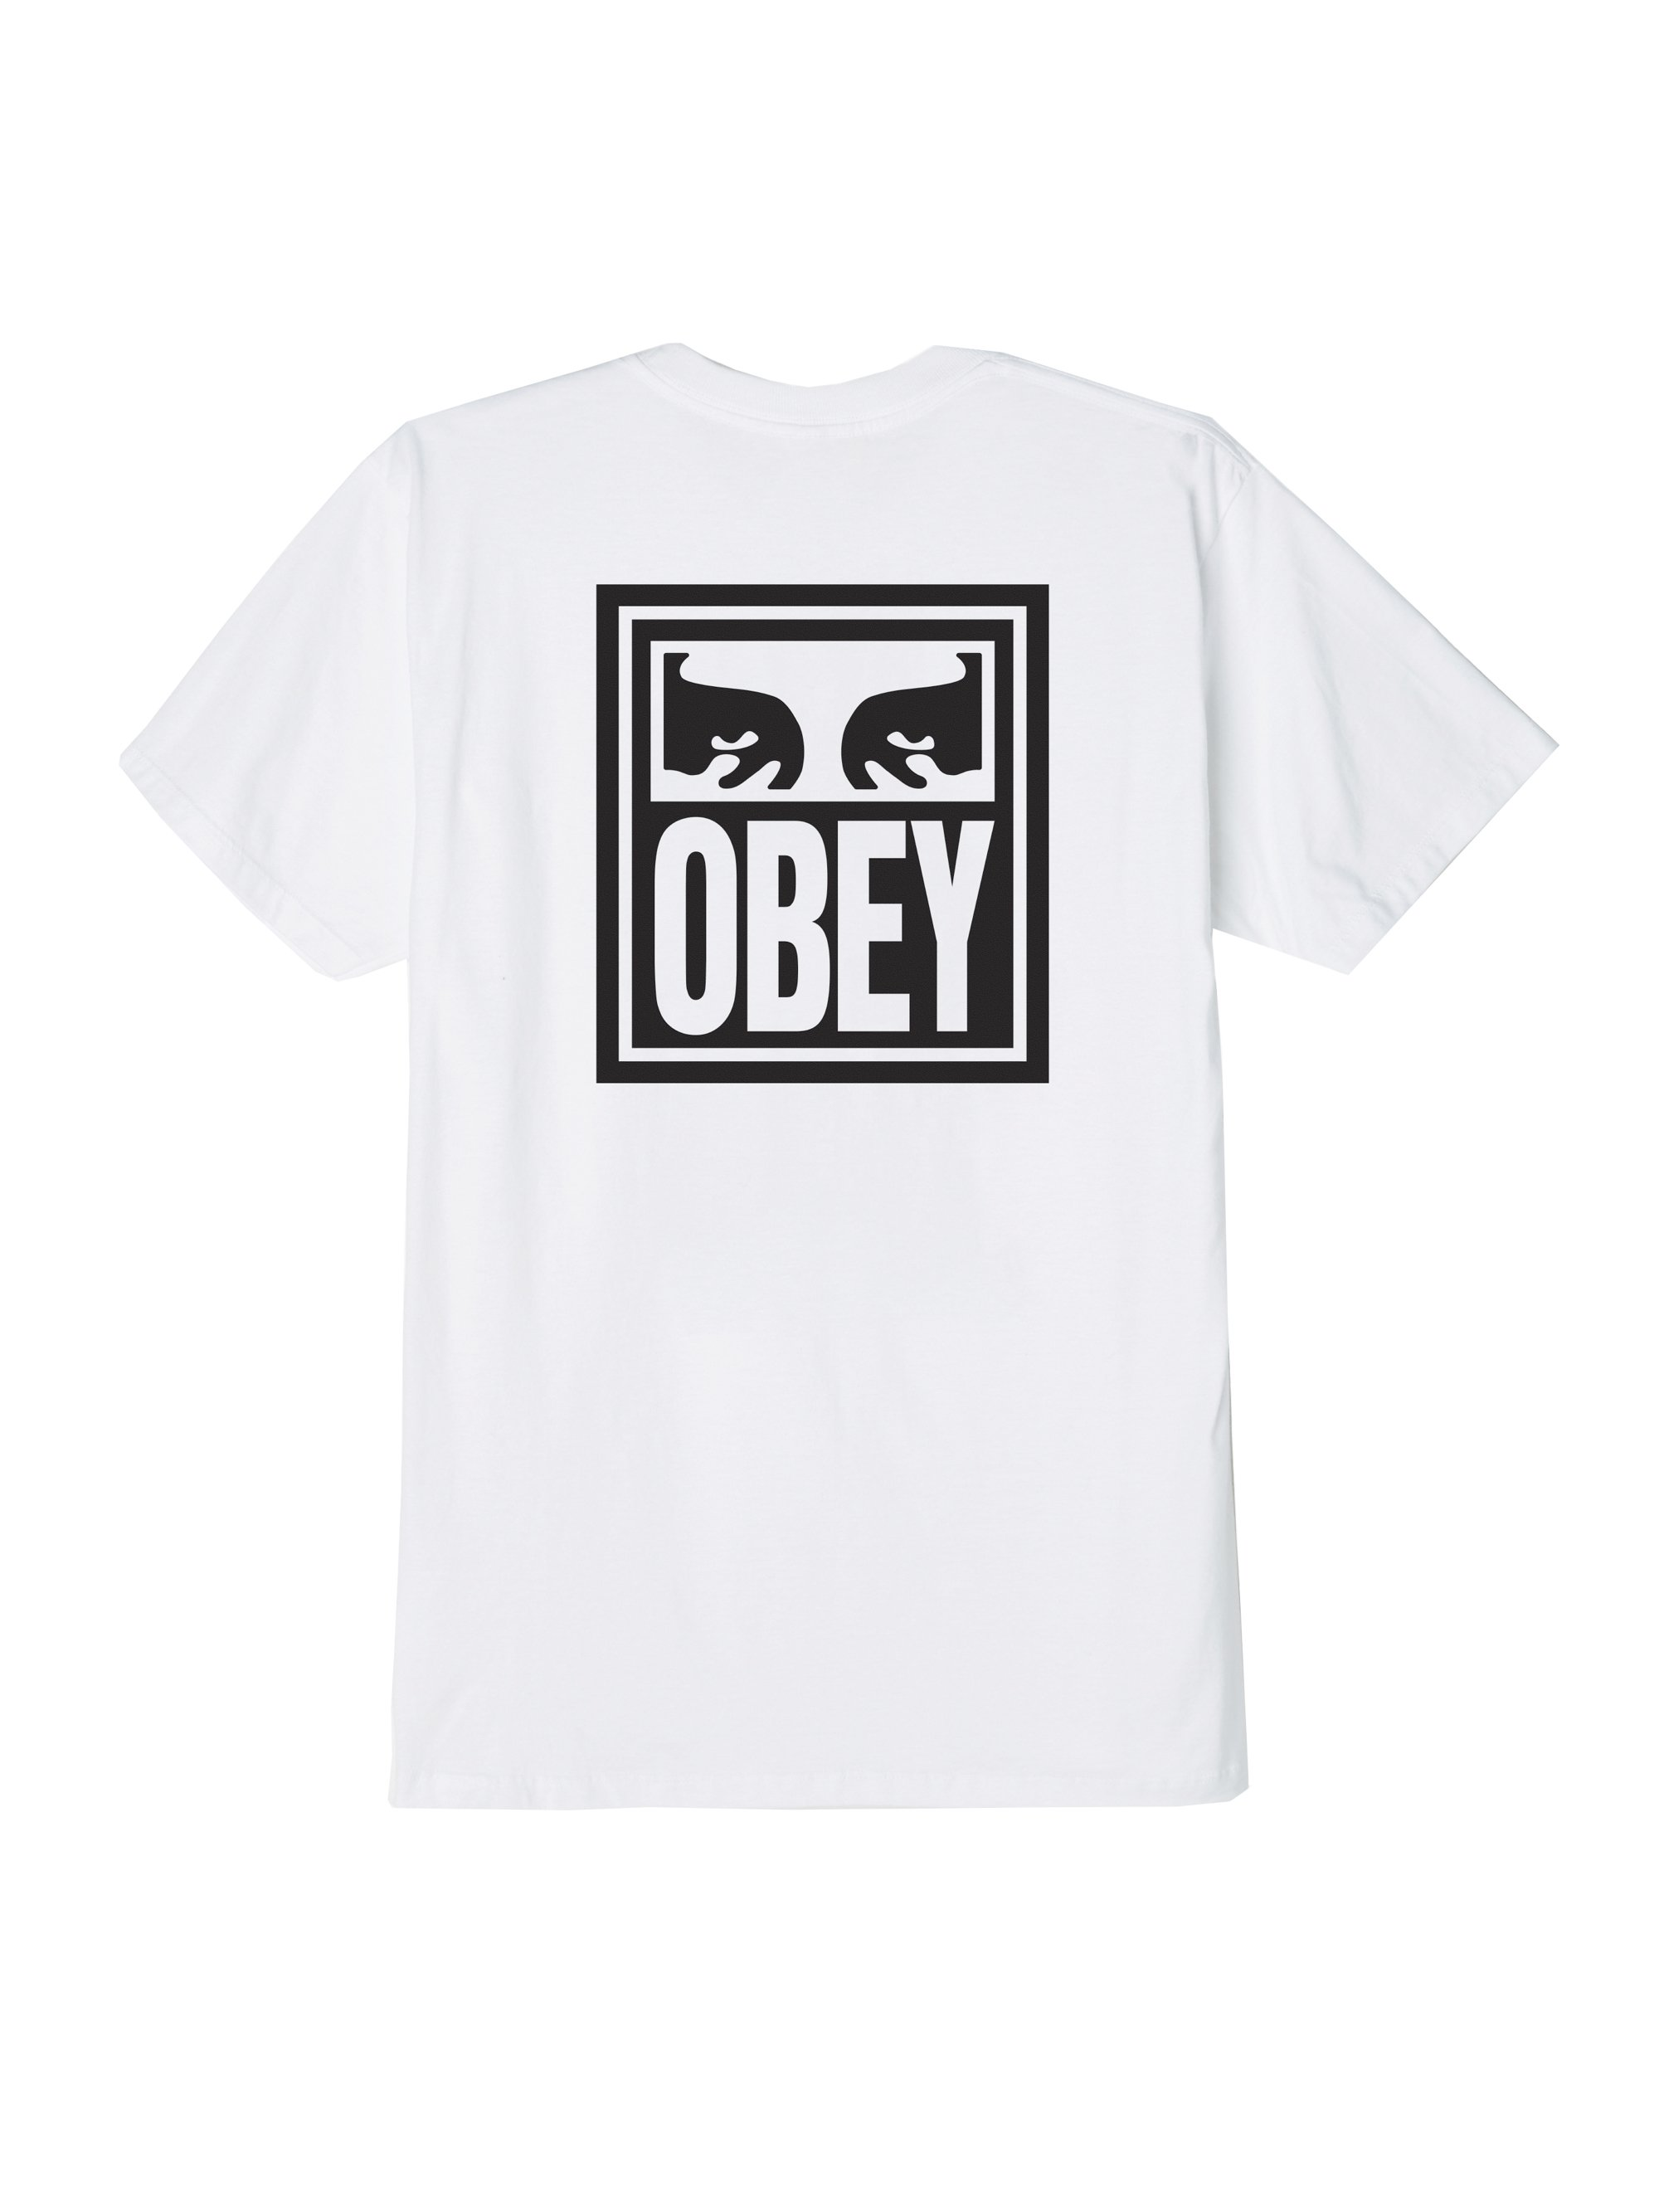 OBEY_Obey_Eyes_Icon_Basic_T-Shirt_163081874_WHT_1_2000x.jpg